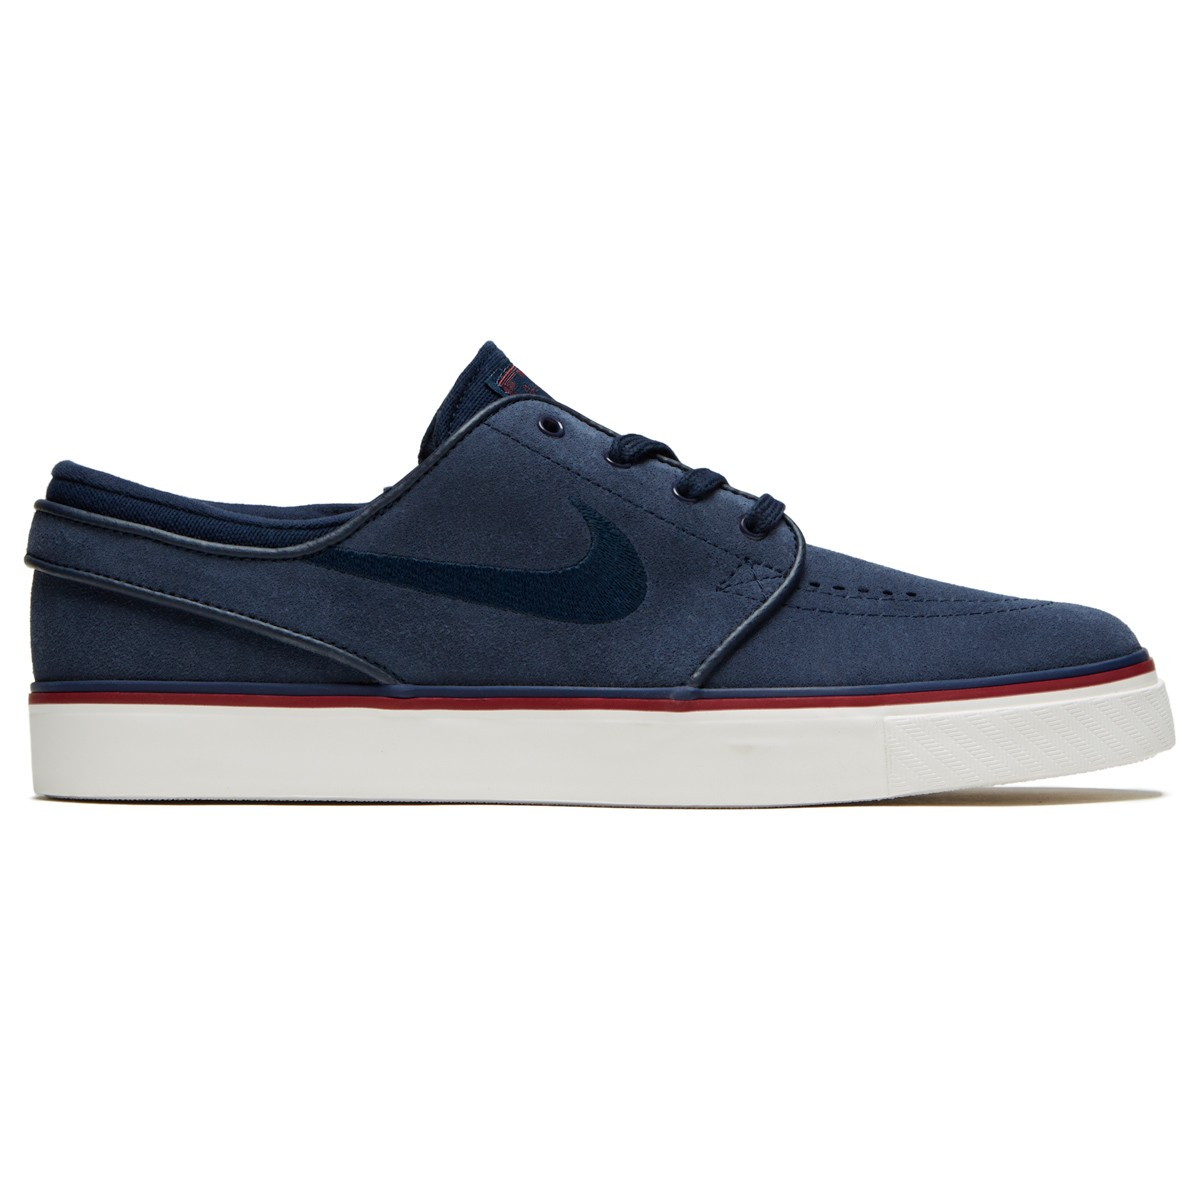 1252e698edb6 Nike SB Air Zoom Stefan Janoski Women s Shoes - Obsidian Dark Obsidian Team  Red